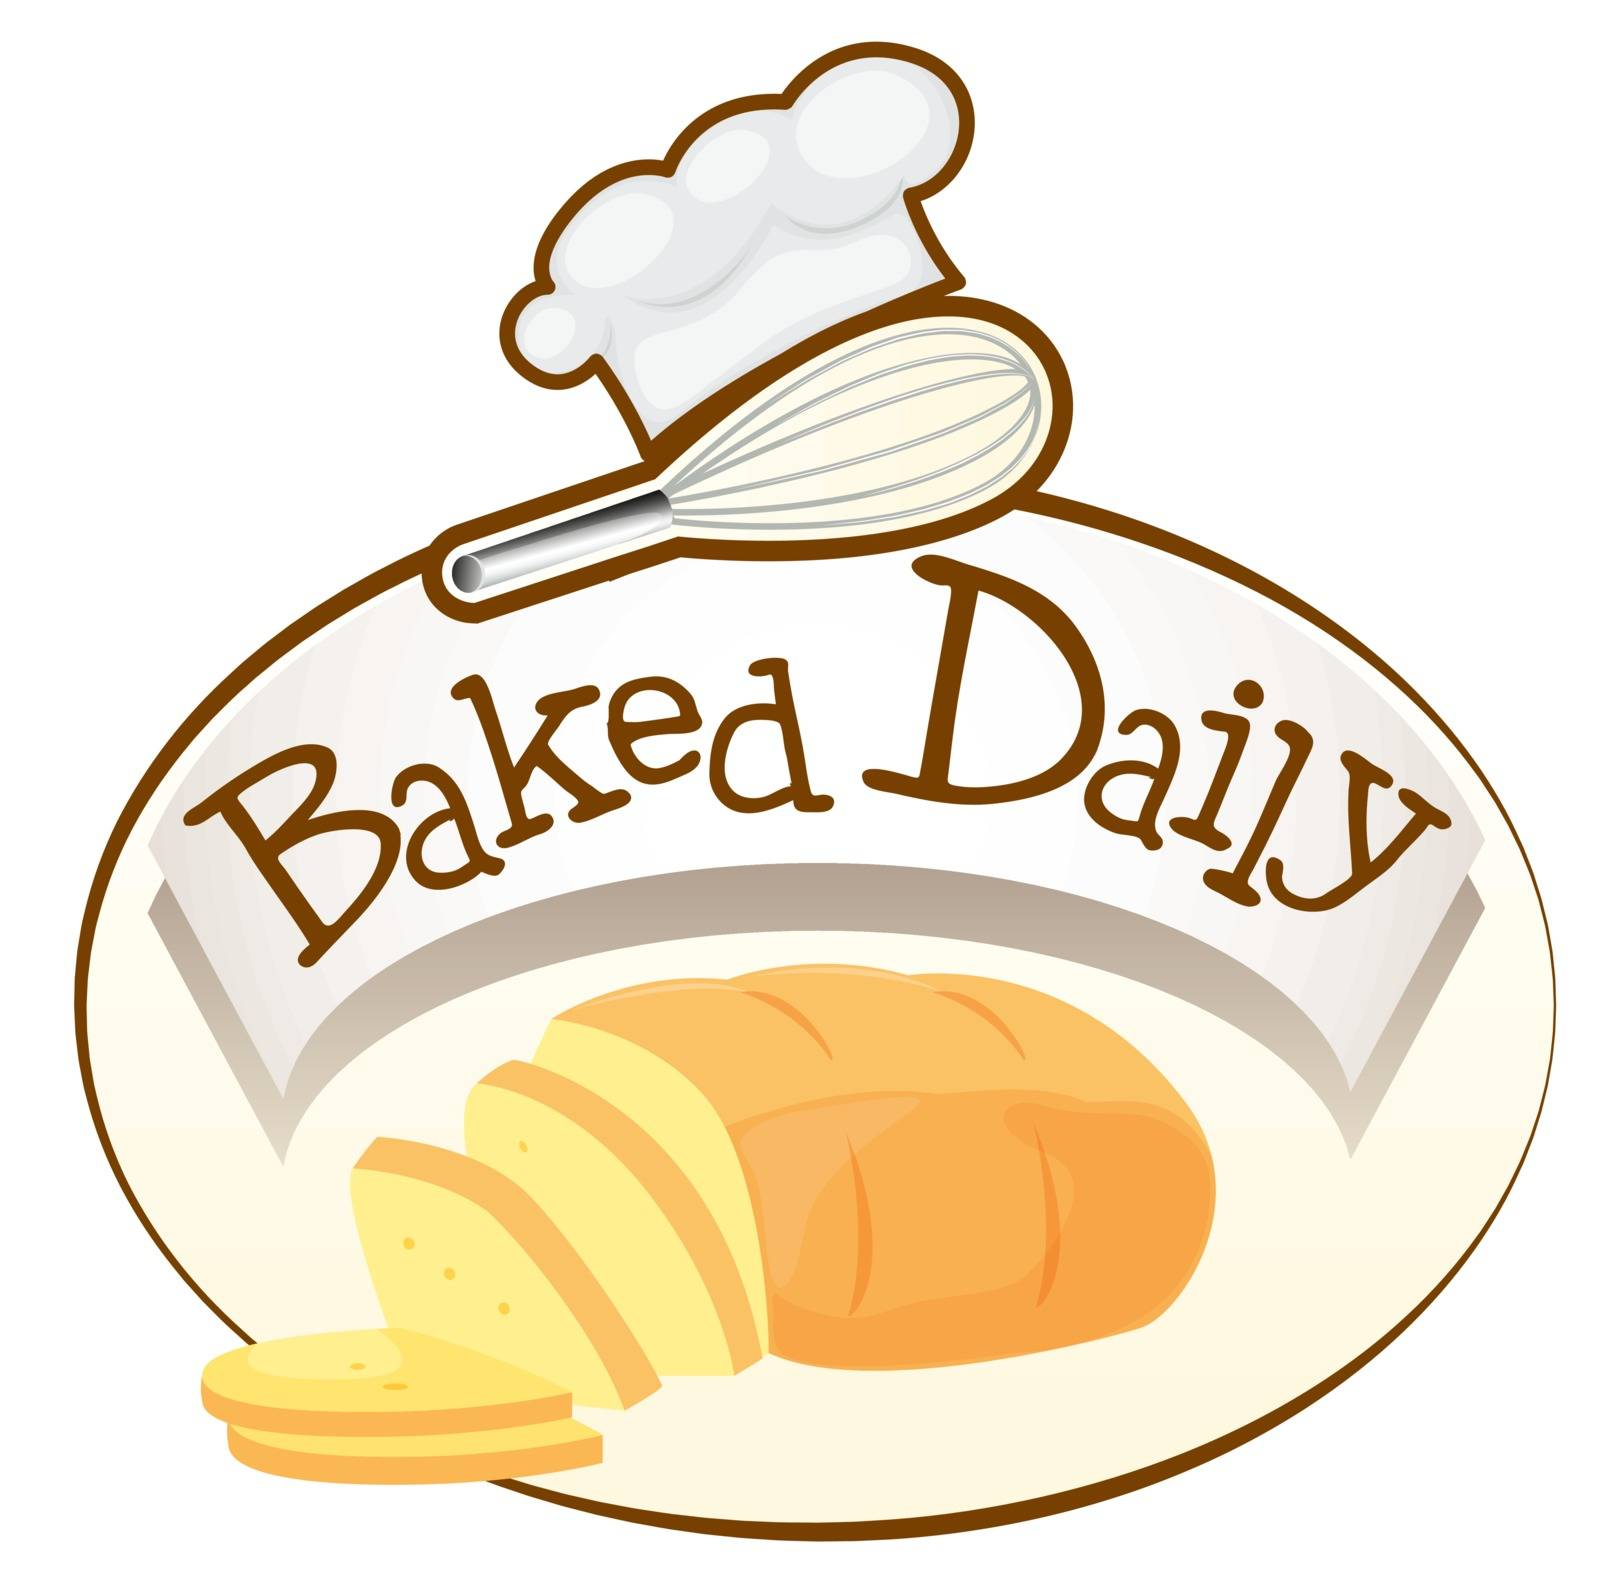 Illustration of a baked daily label with bread on a white background